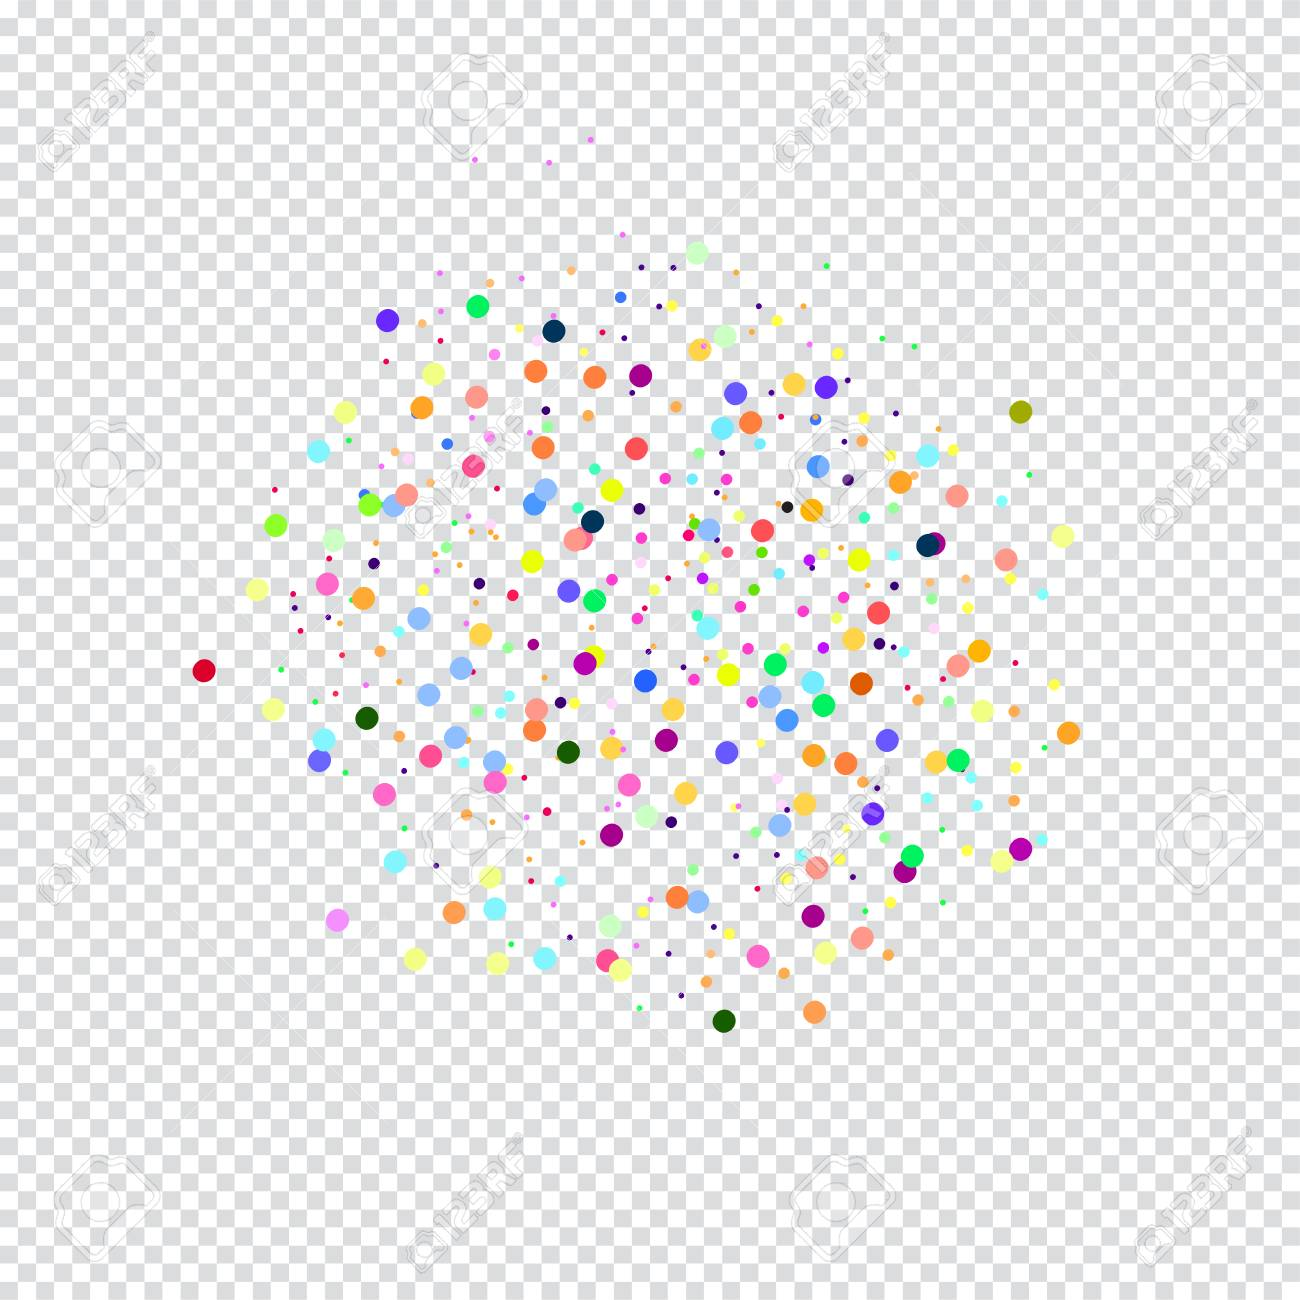 colorful confetti on transparent background vector template